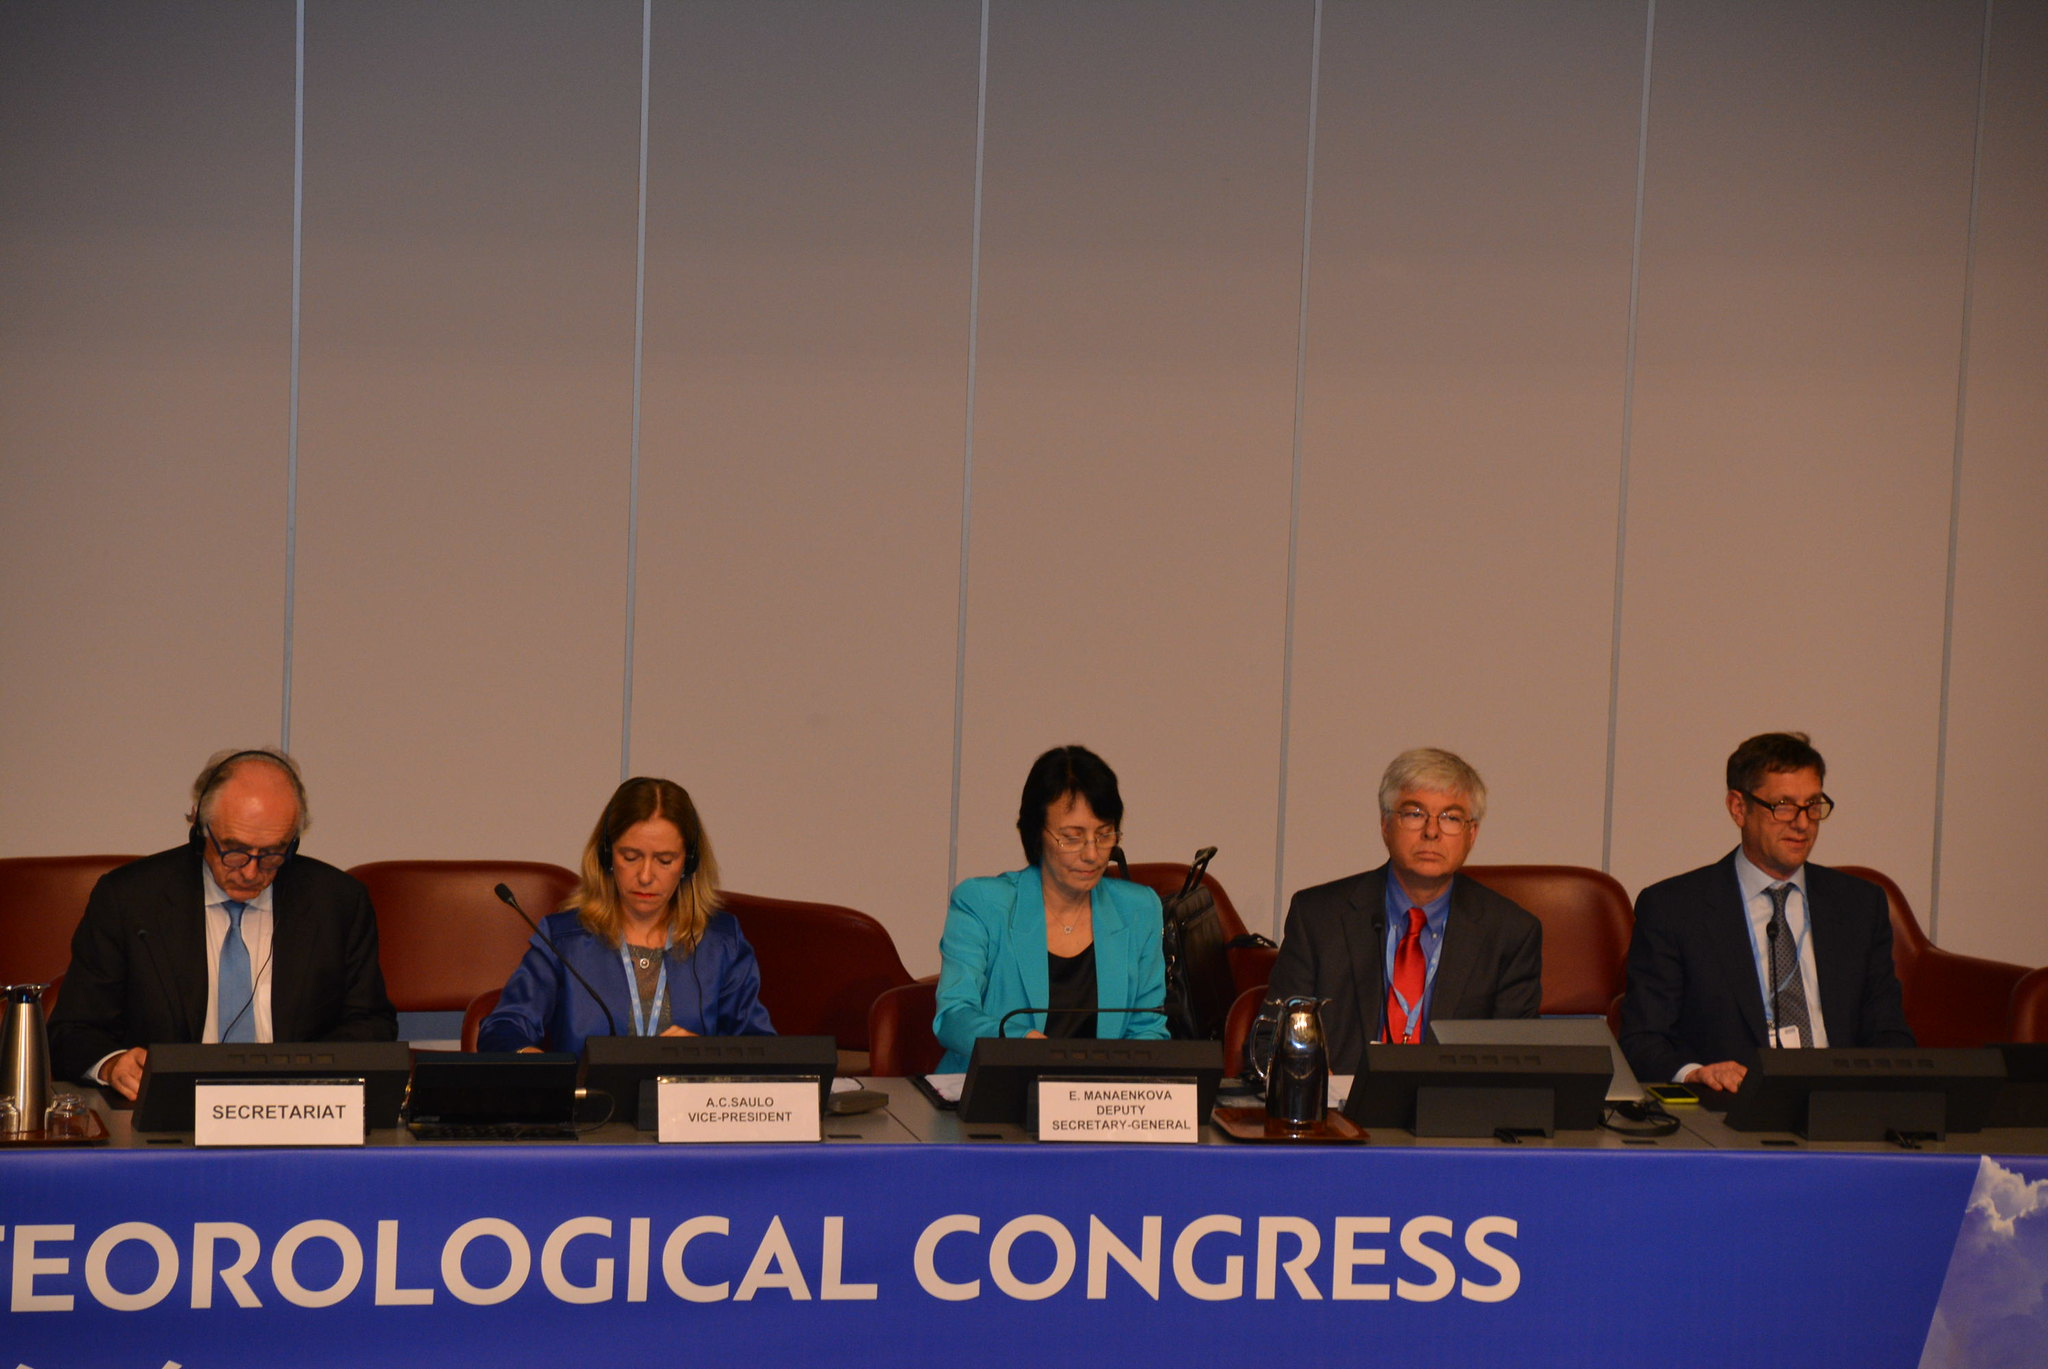 WMO Cg18 Science to Policy panel